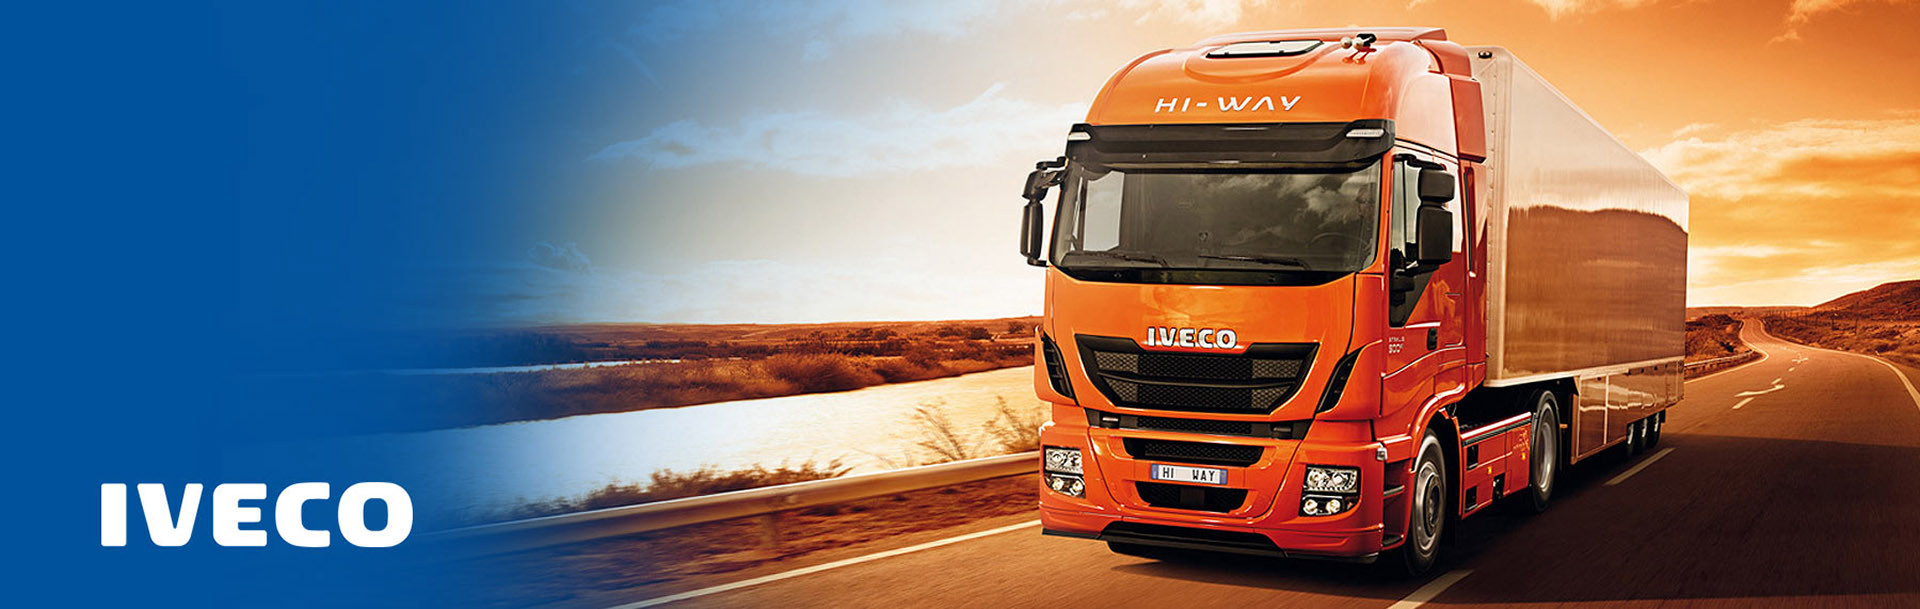 promotions truck-centre-durban-iveco-stralis